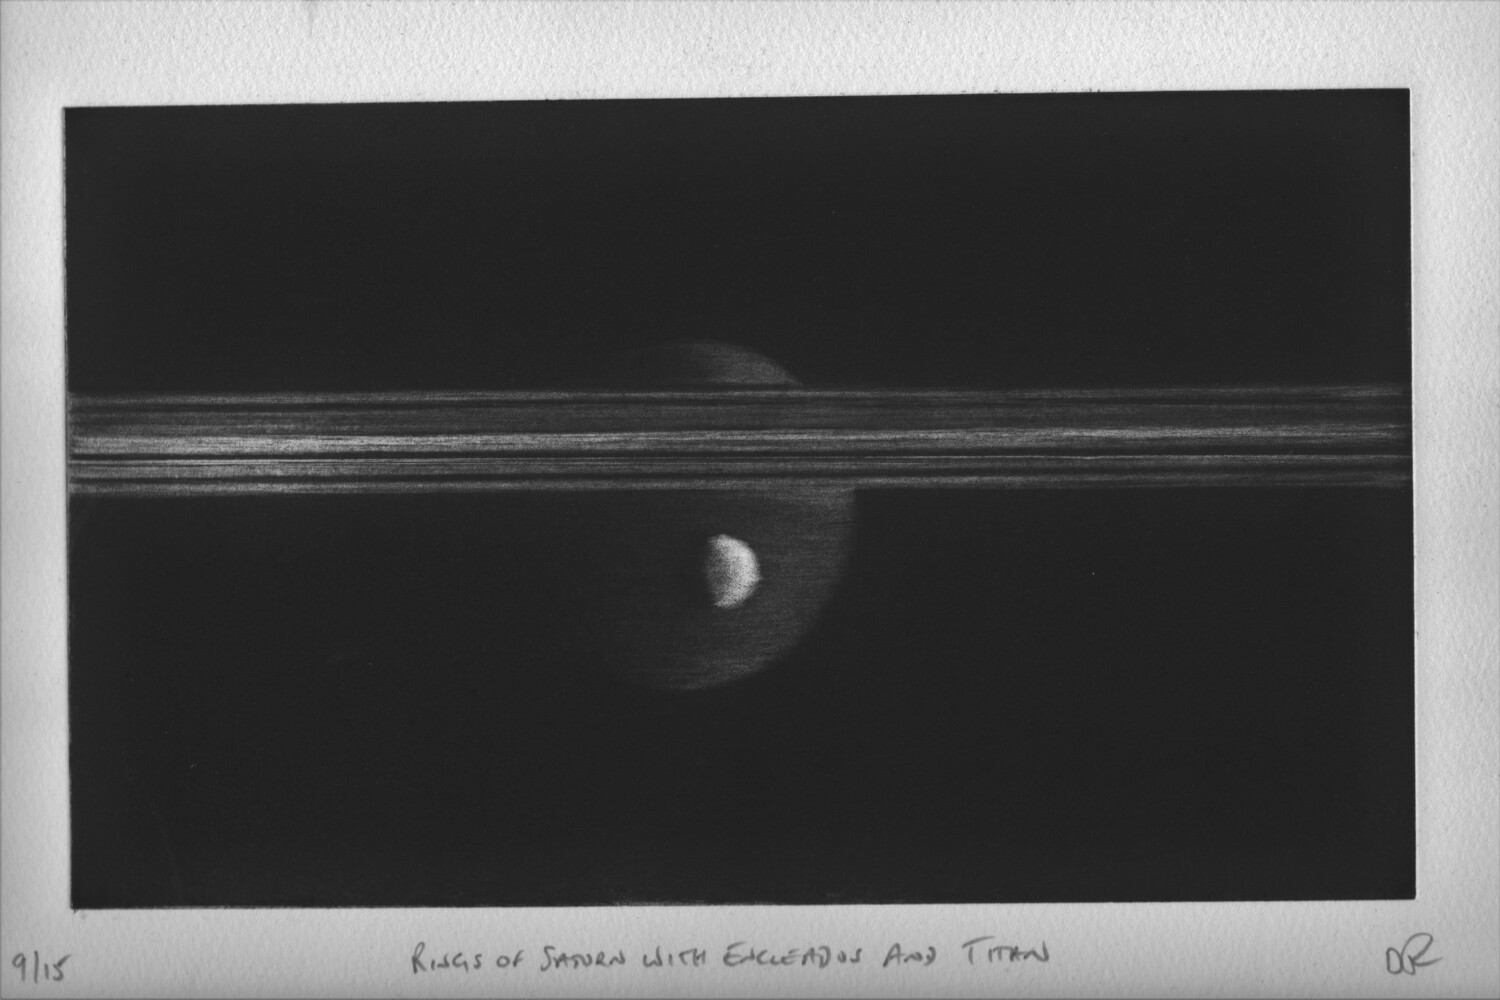 Rings of Saturn with Enceladus and Titan